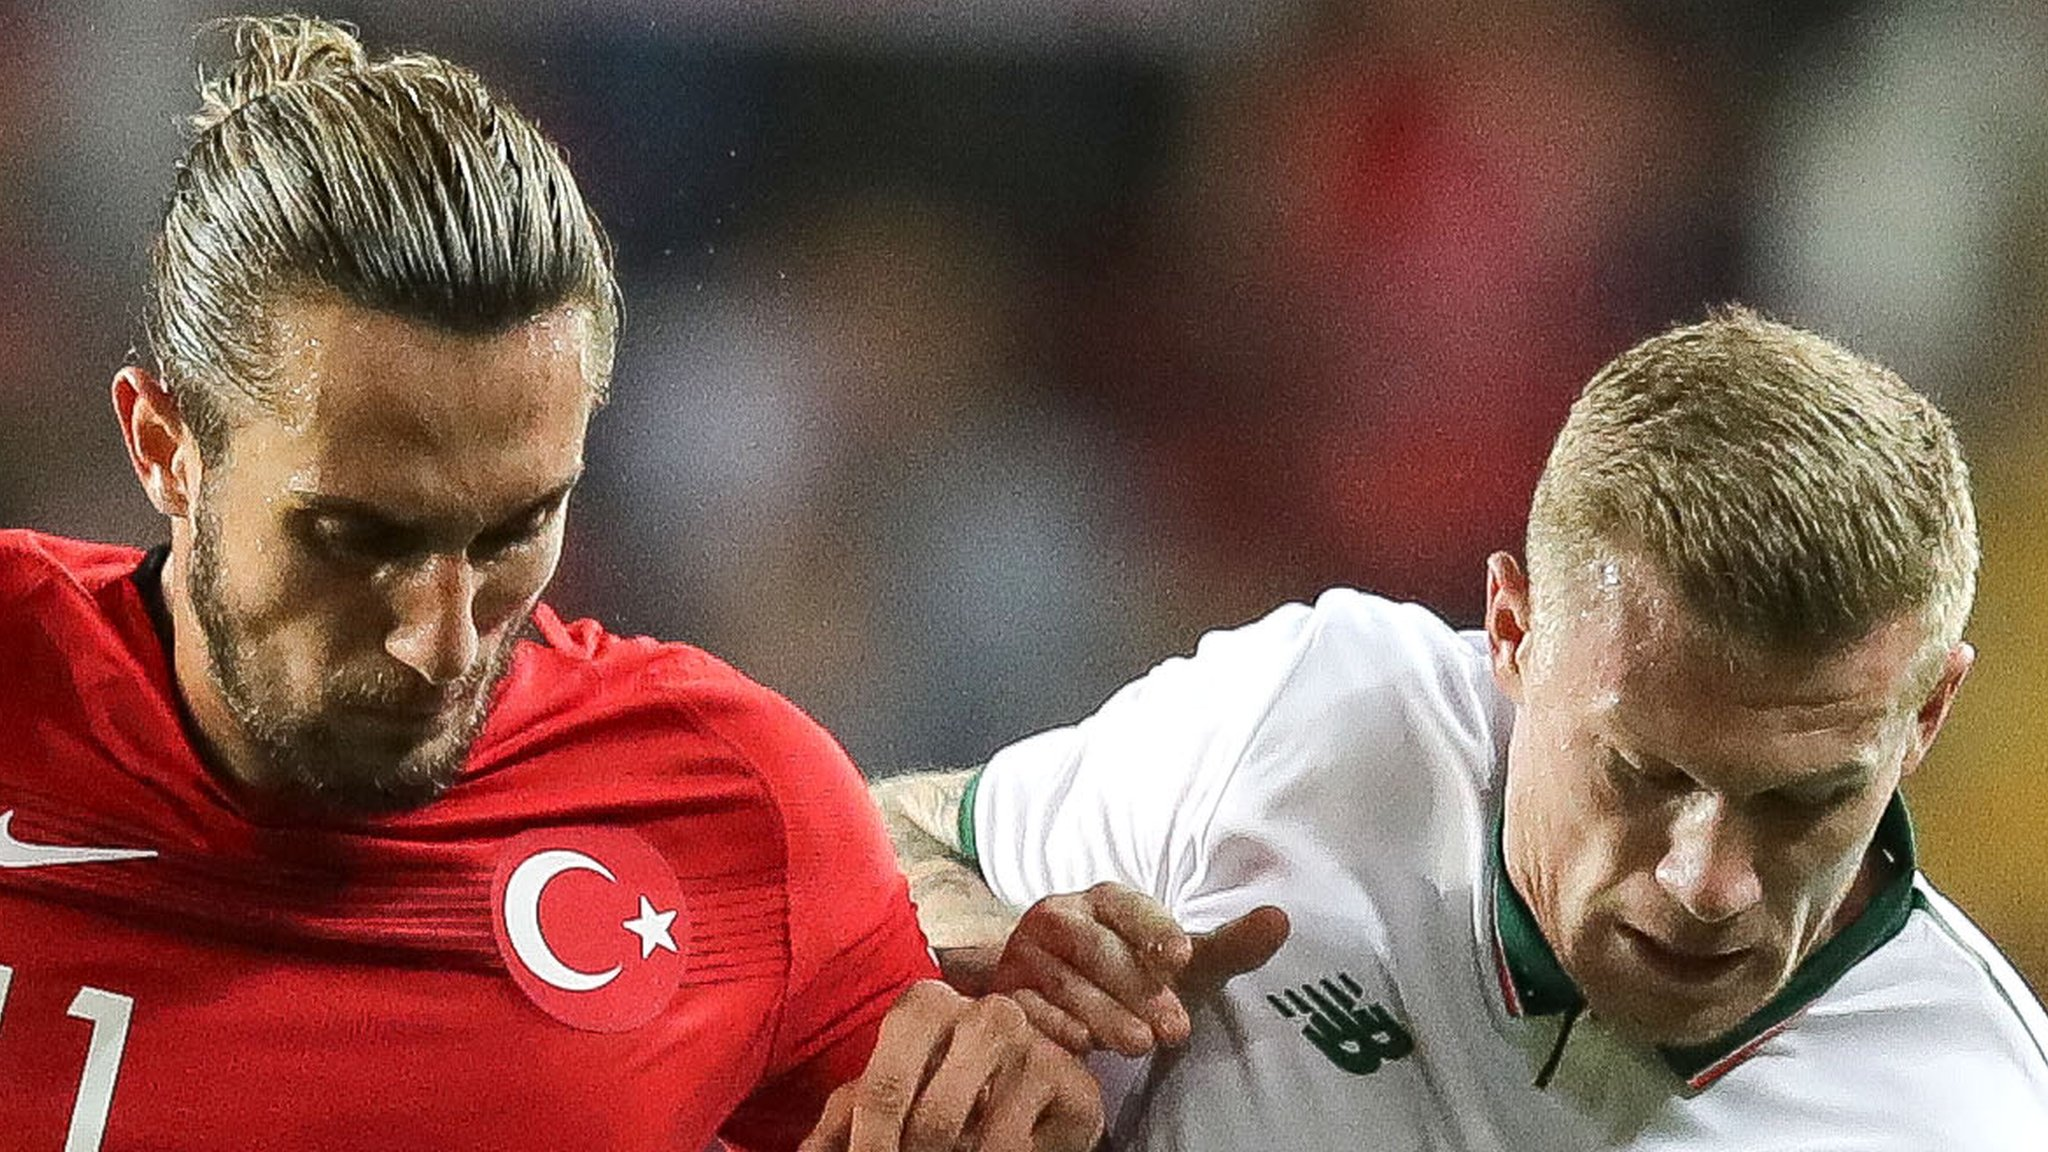 Republic beaten by Topal goal in Turkey